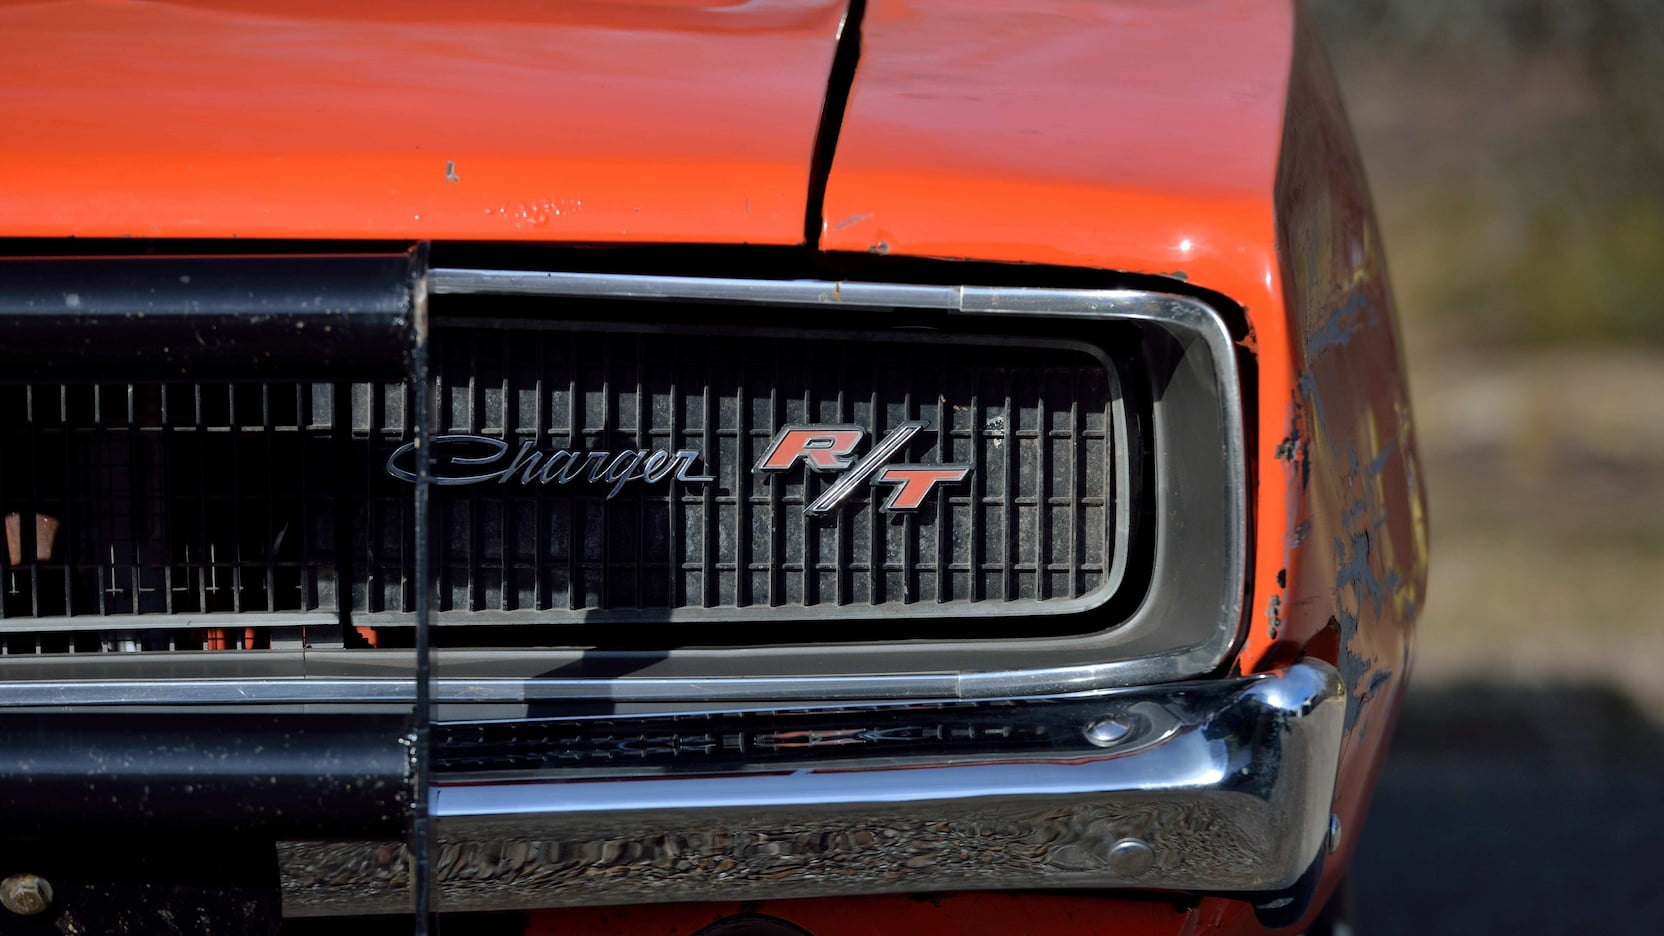 1969 Dodge Charger General Lee Stunt Car grille